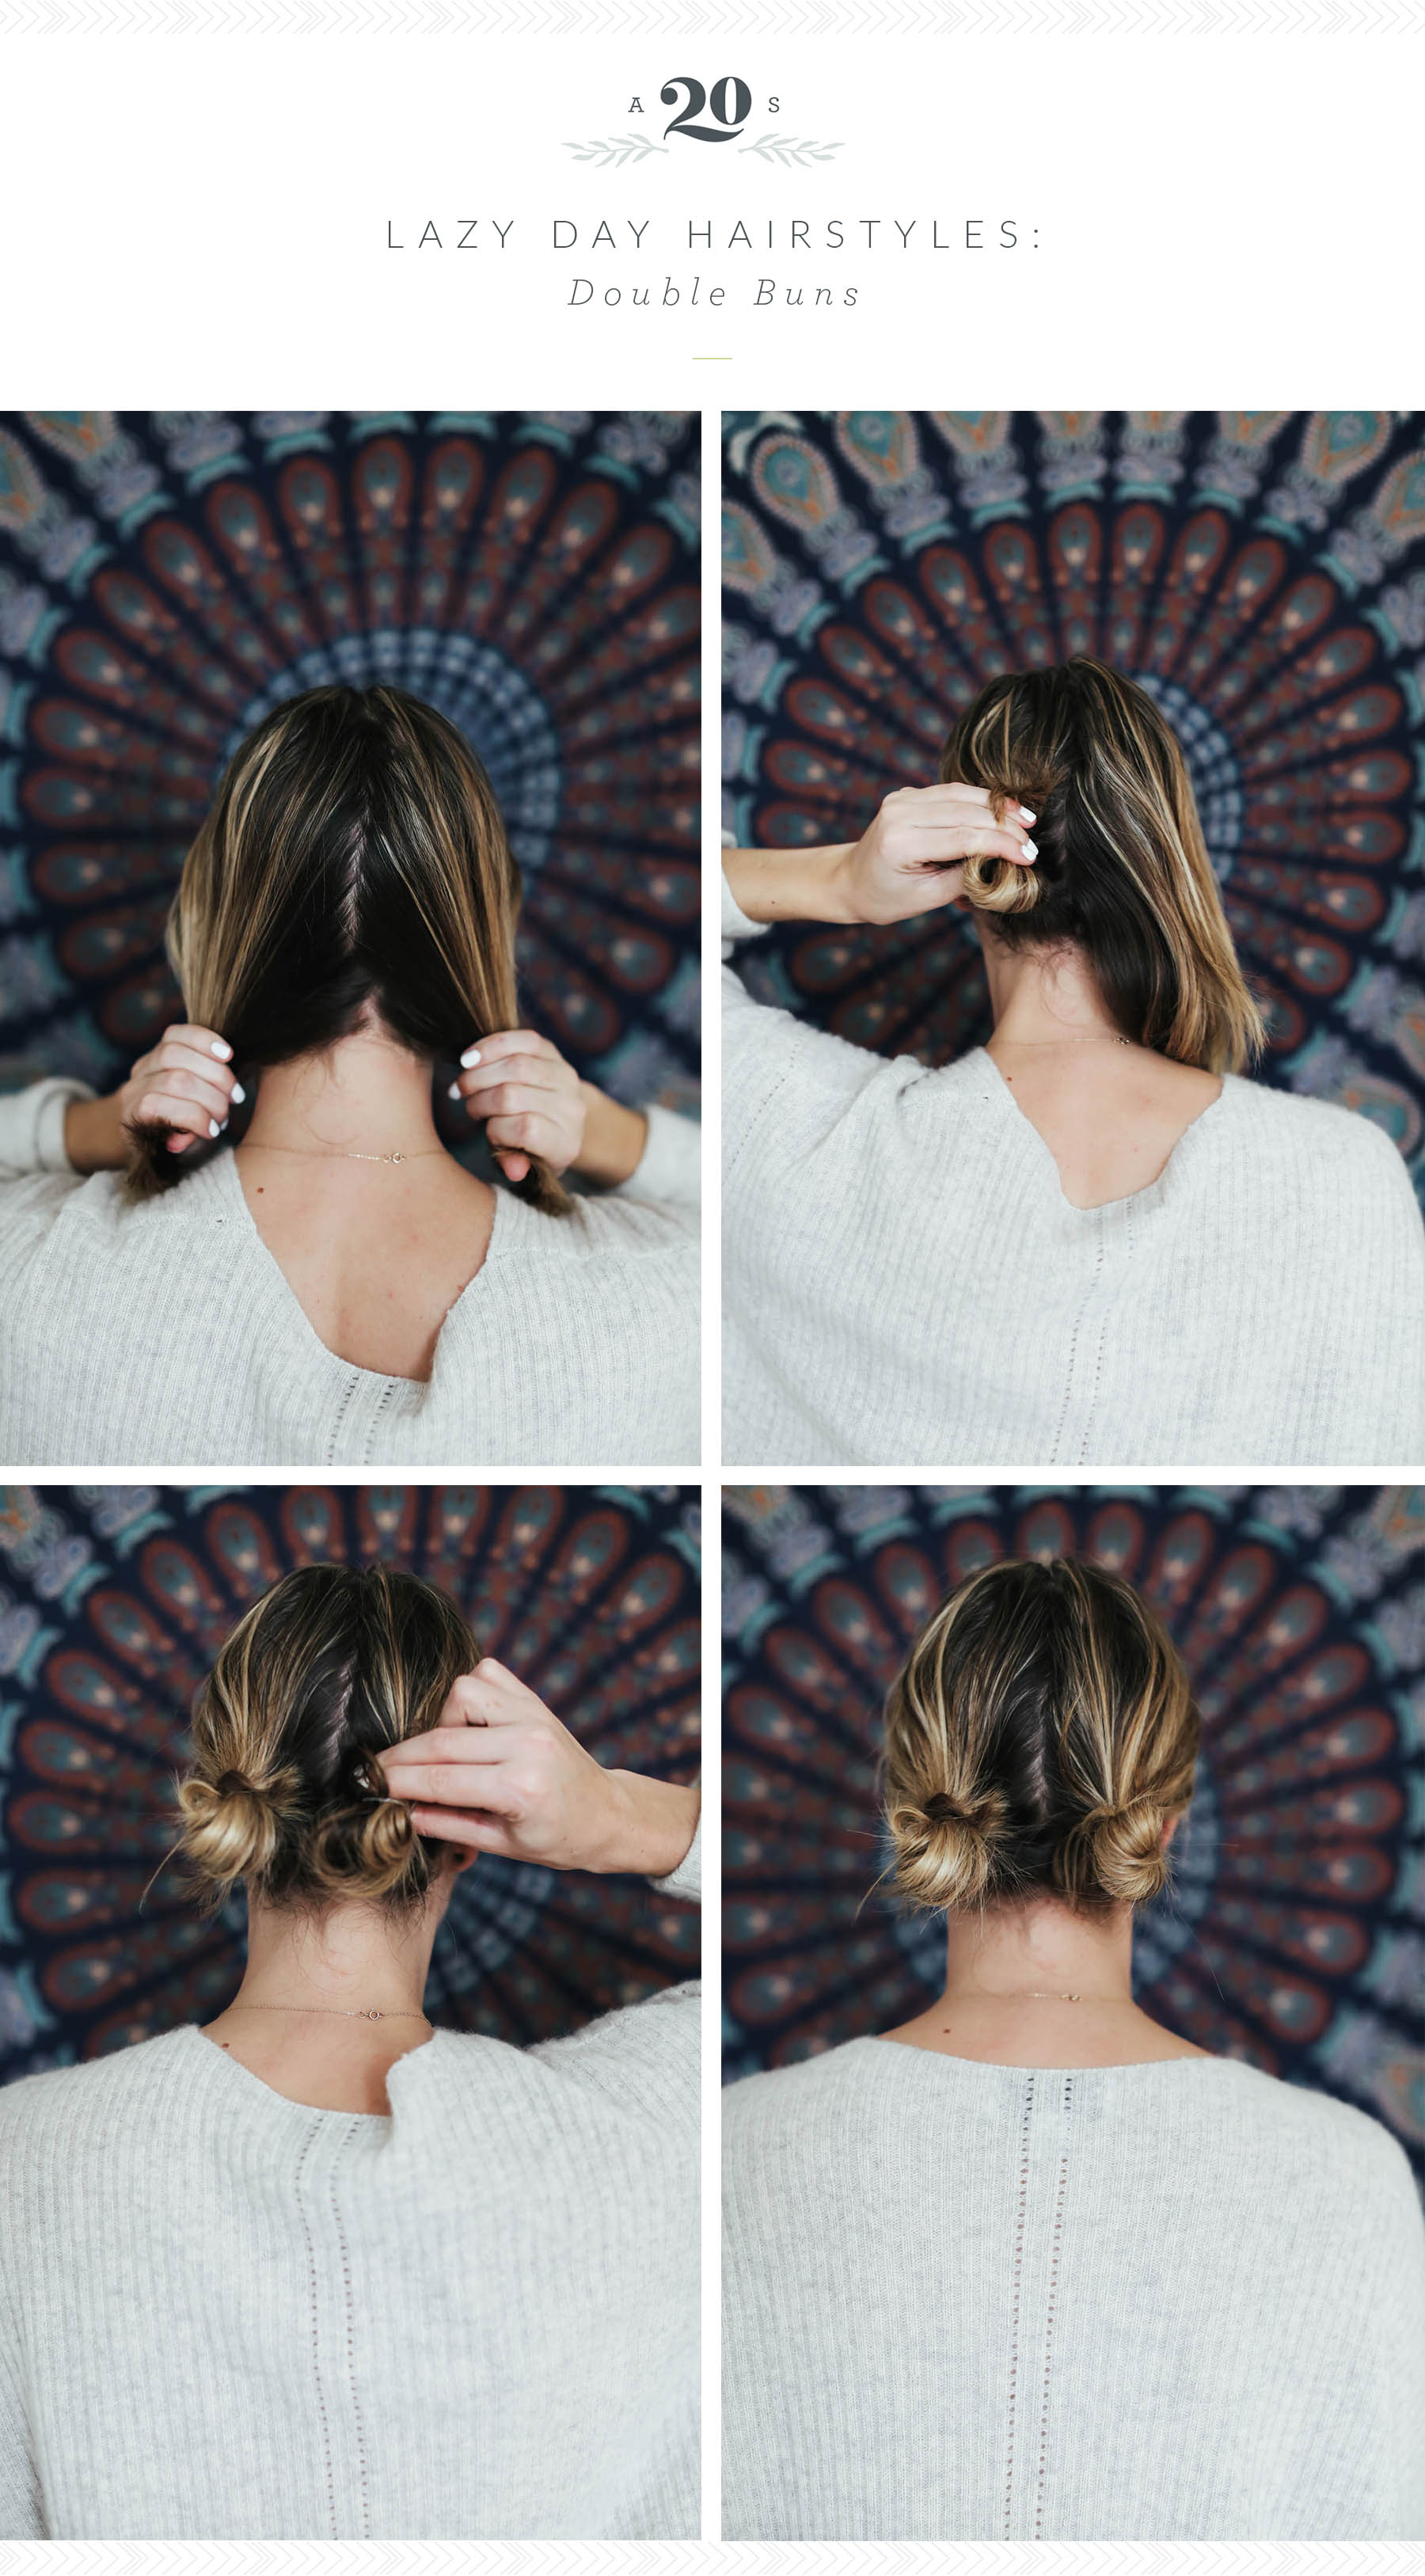 3 Easy Hairstyles For Lazy Days Advice From A Twenty Something